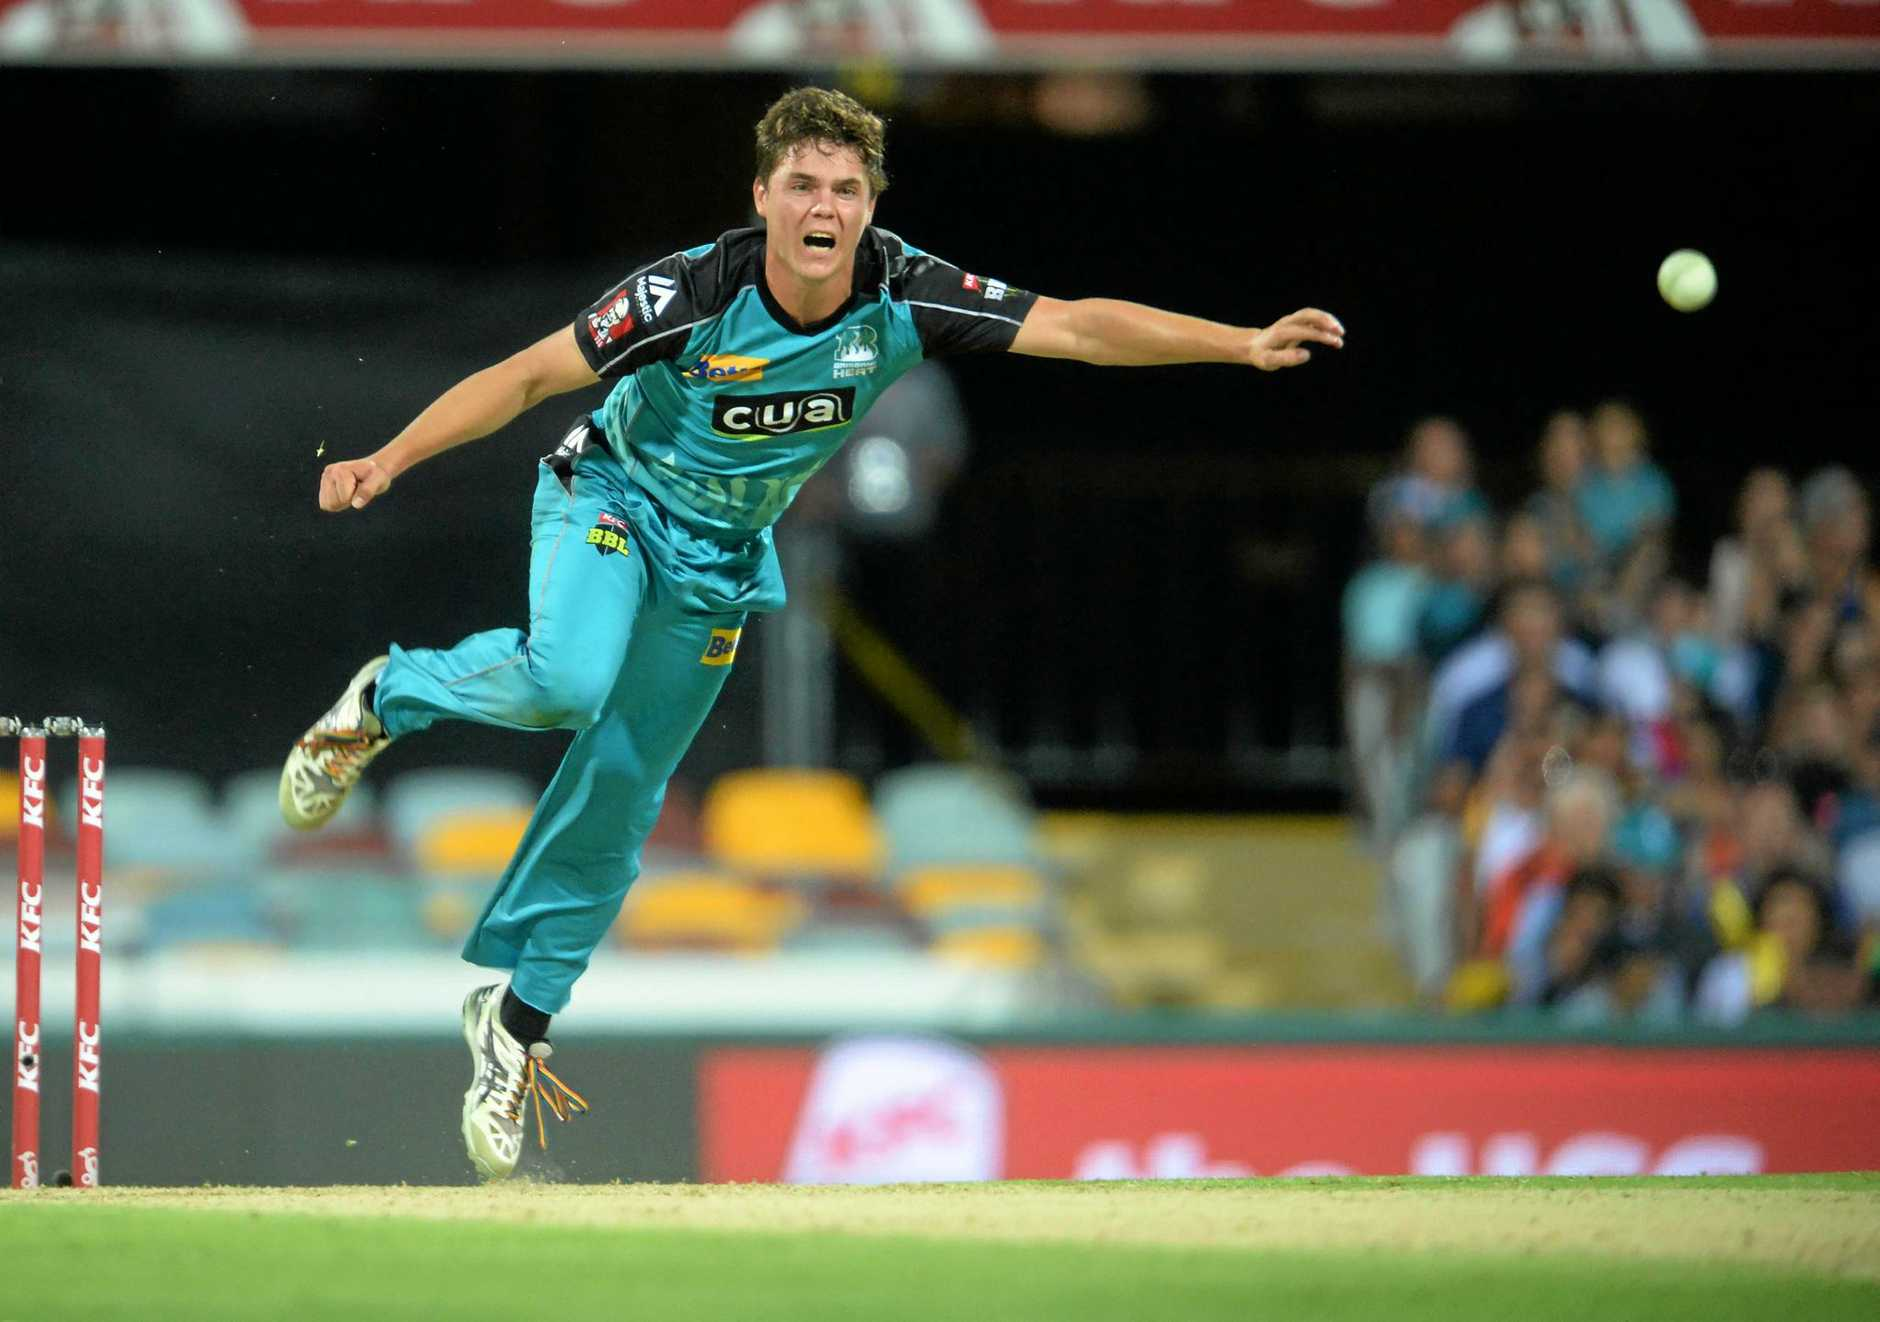 Mitchell Swepson bowls for the Brisbane Heat in the Big Bash League.